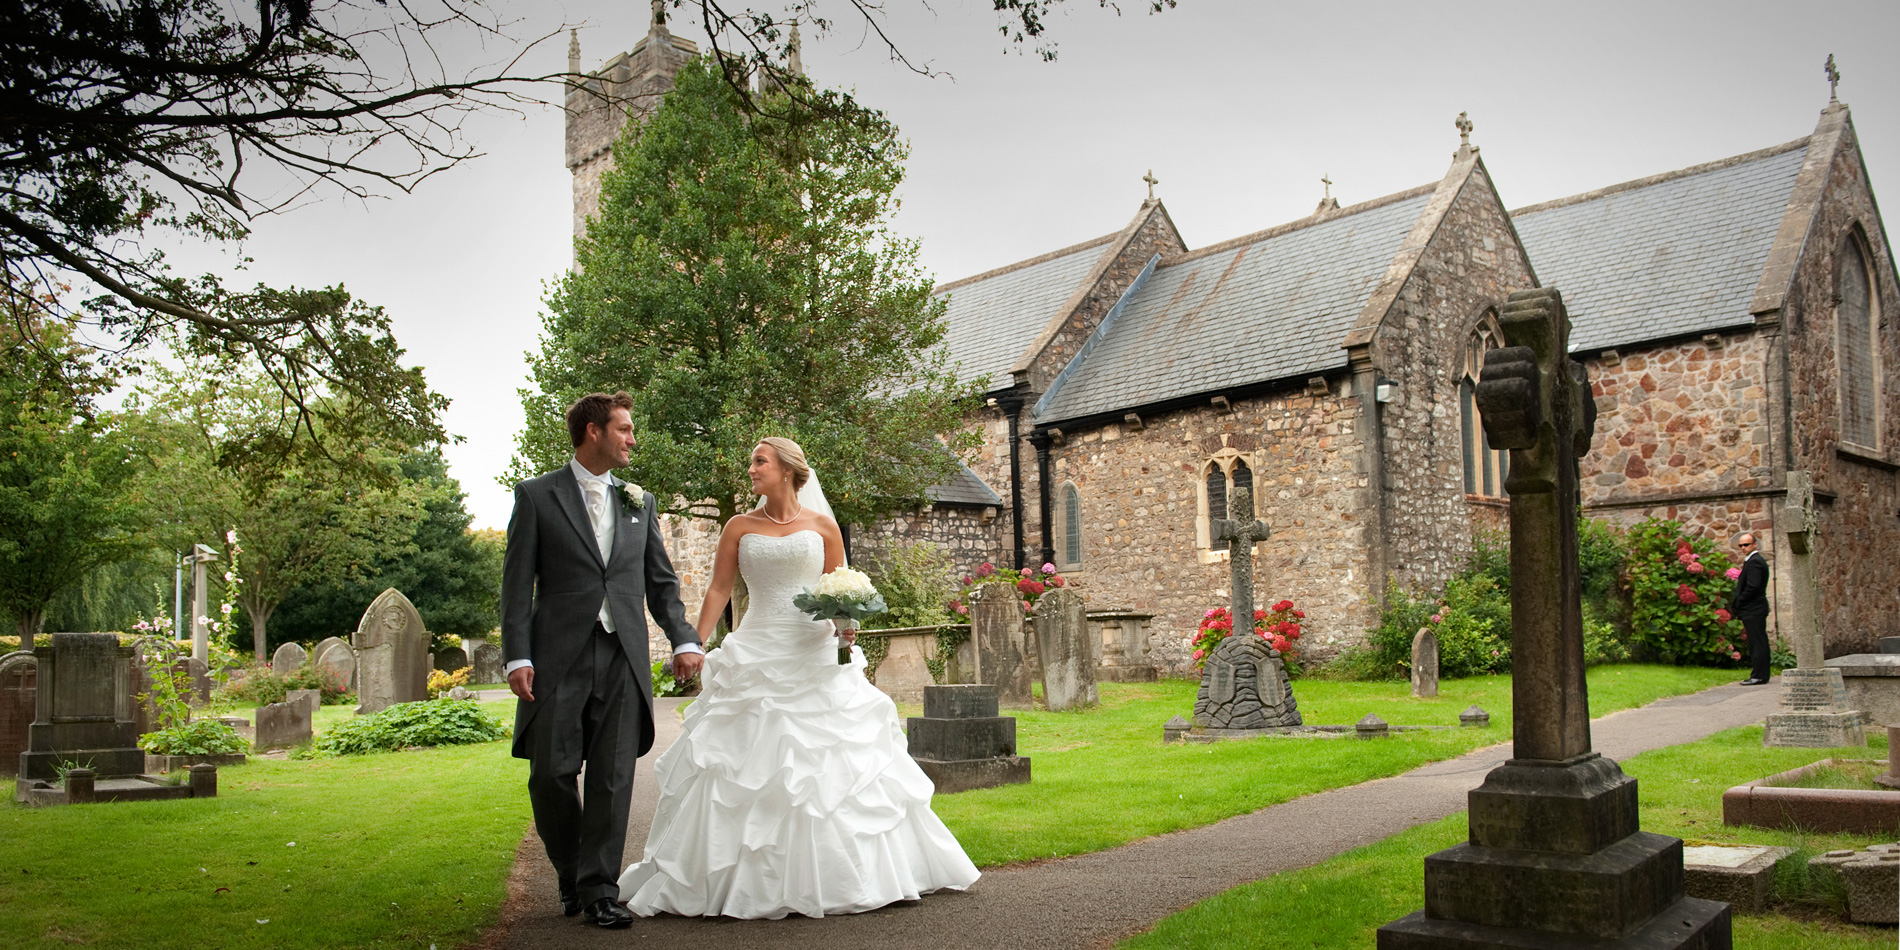 Cardiff-wedding-photographer-Bride-and-Groom-Llanishen-wedding-photographer